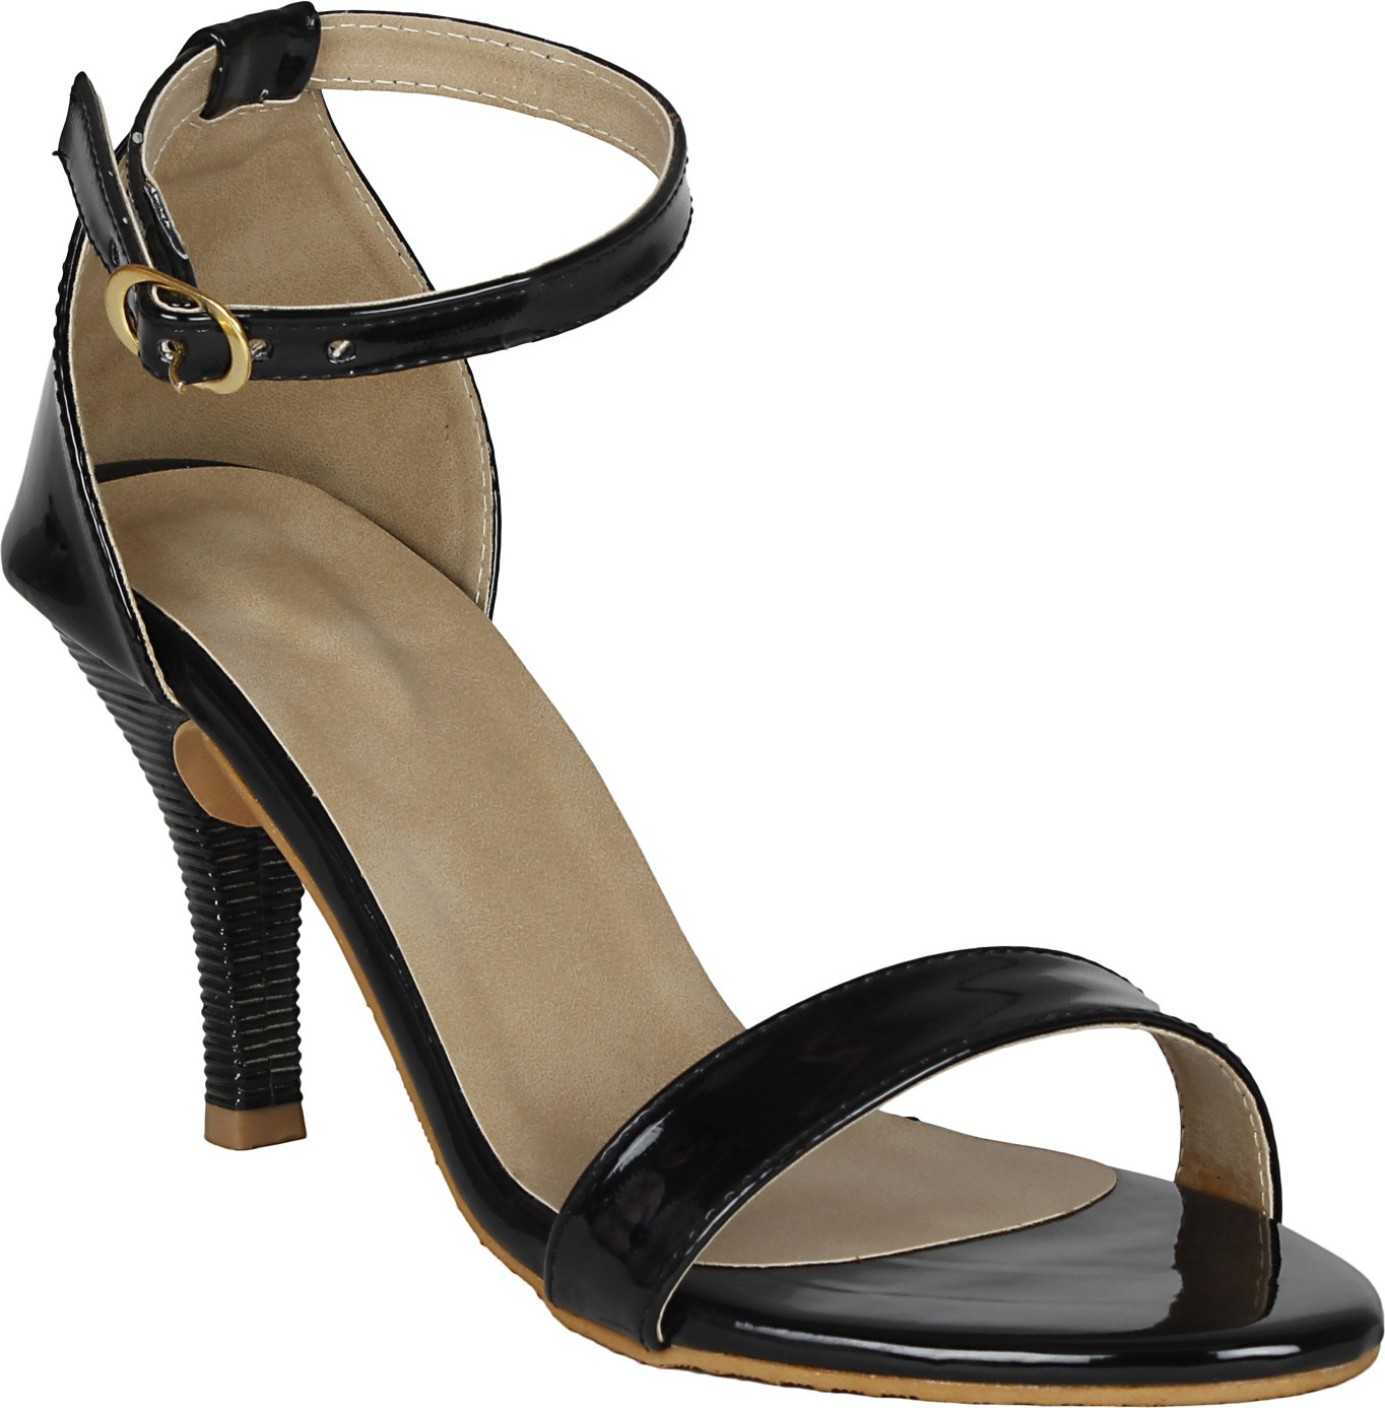 Black pumps online shopping india